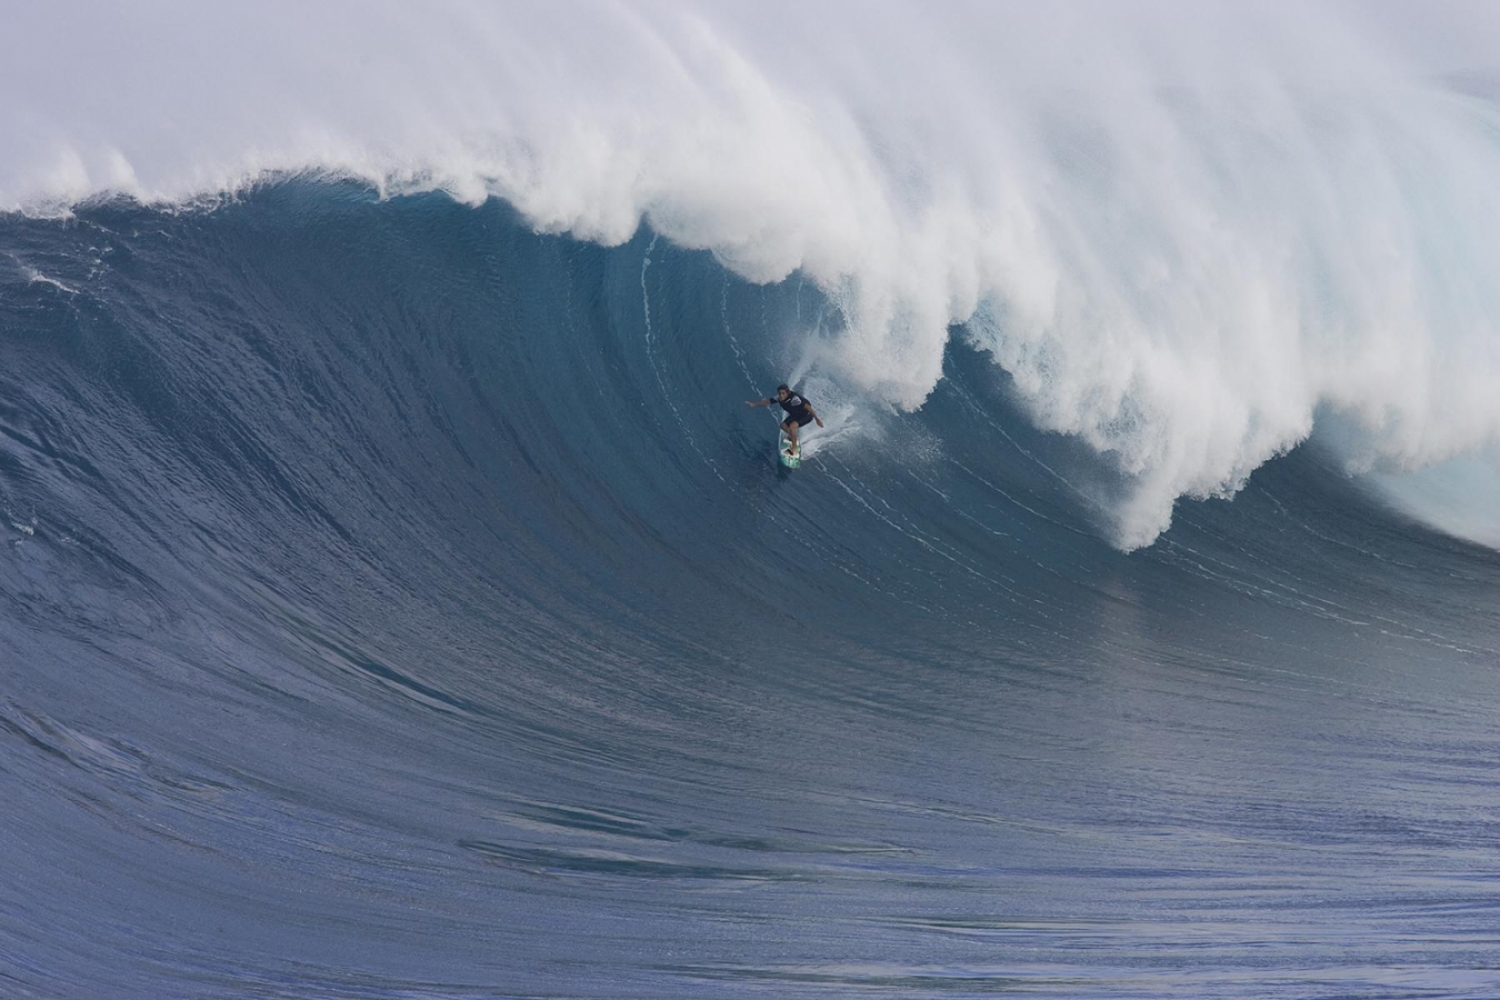 Billy Kemper, tow surf Jaws 2009